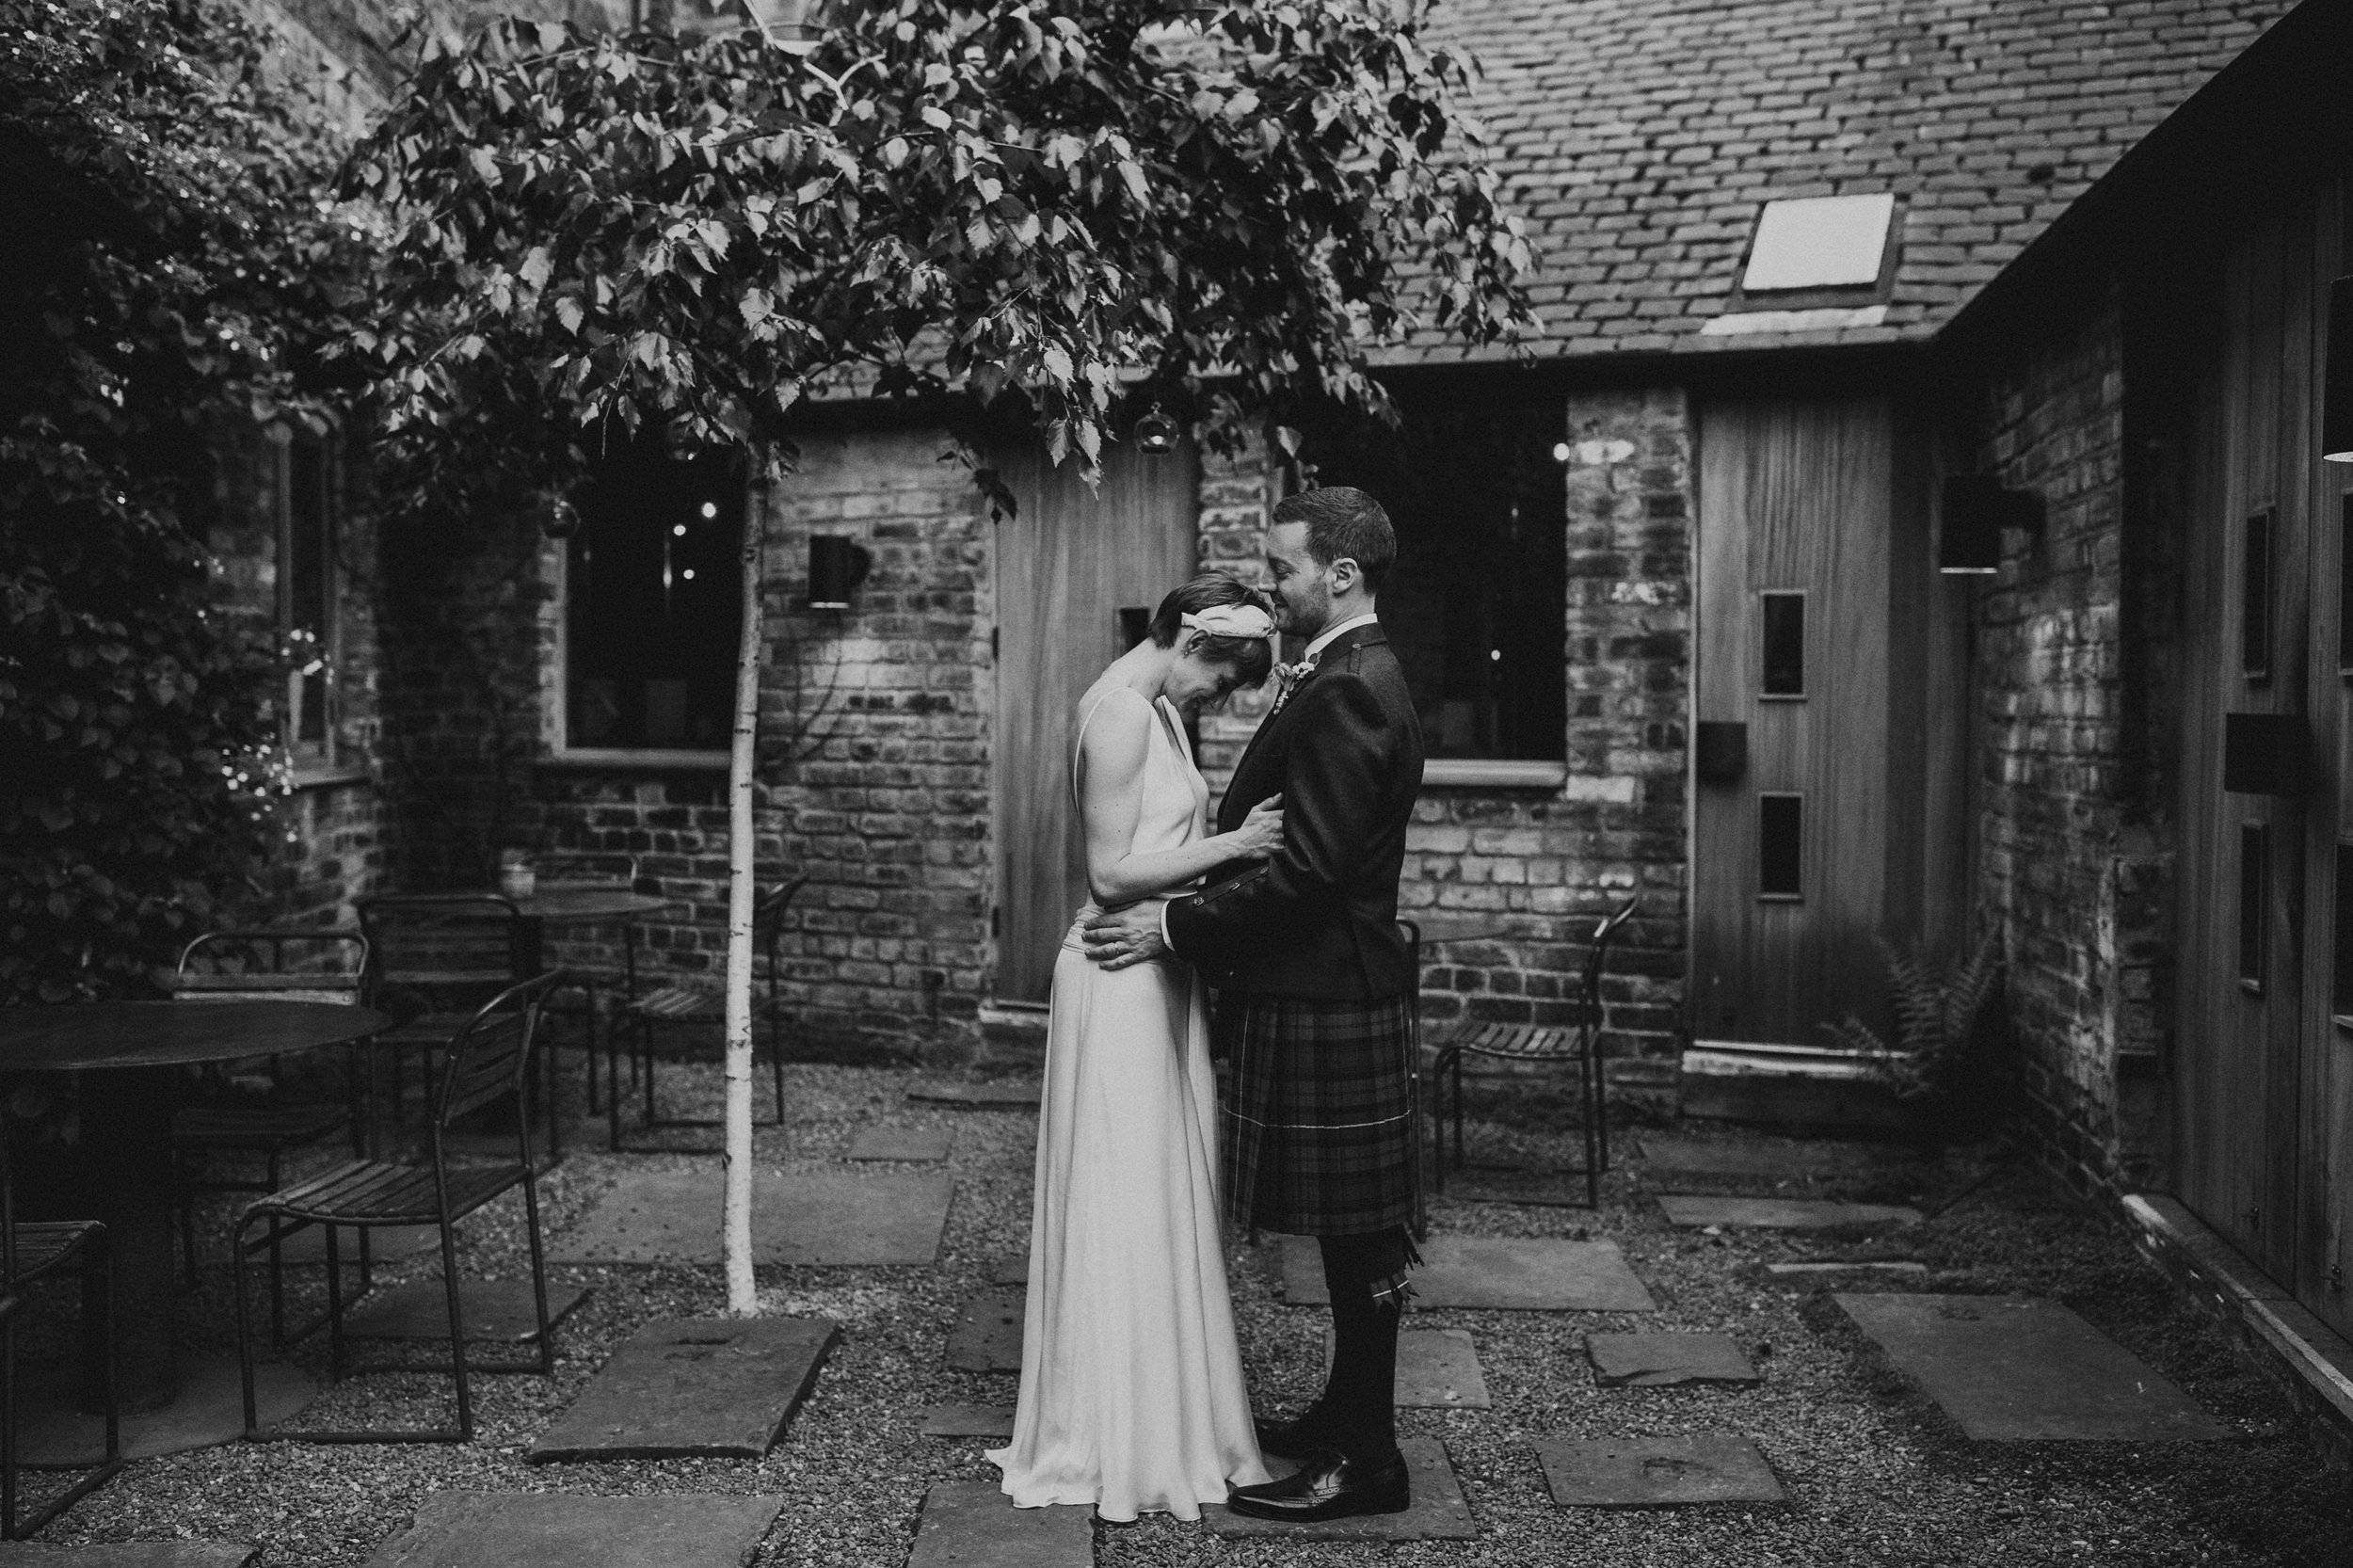 TIMBERYARD_EDINBURGH_WEDDING_PJ_PHILLIPS_PHOTOGRAPHY_206.jpg